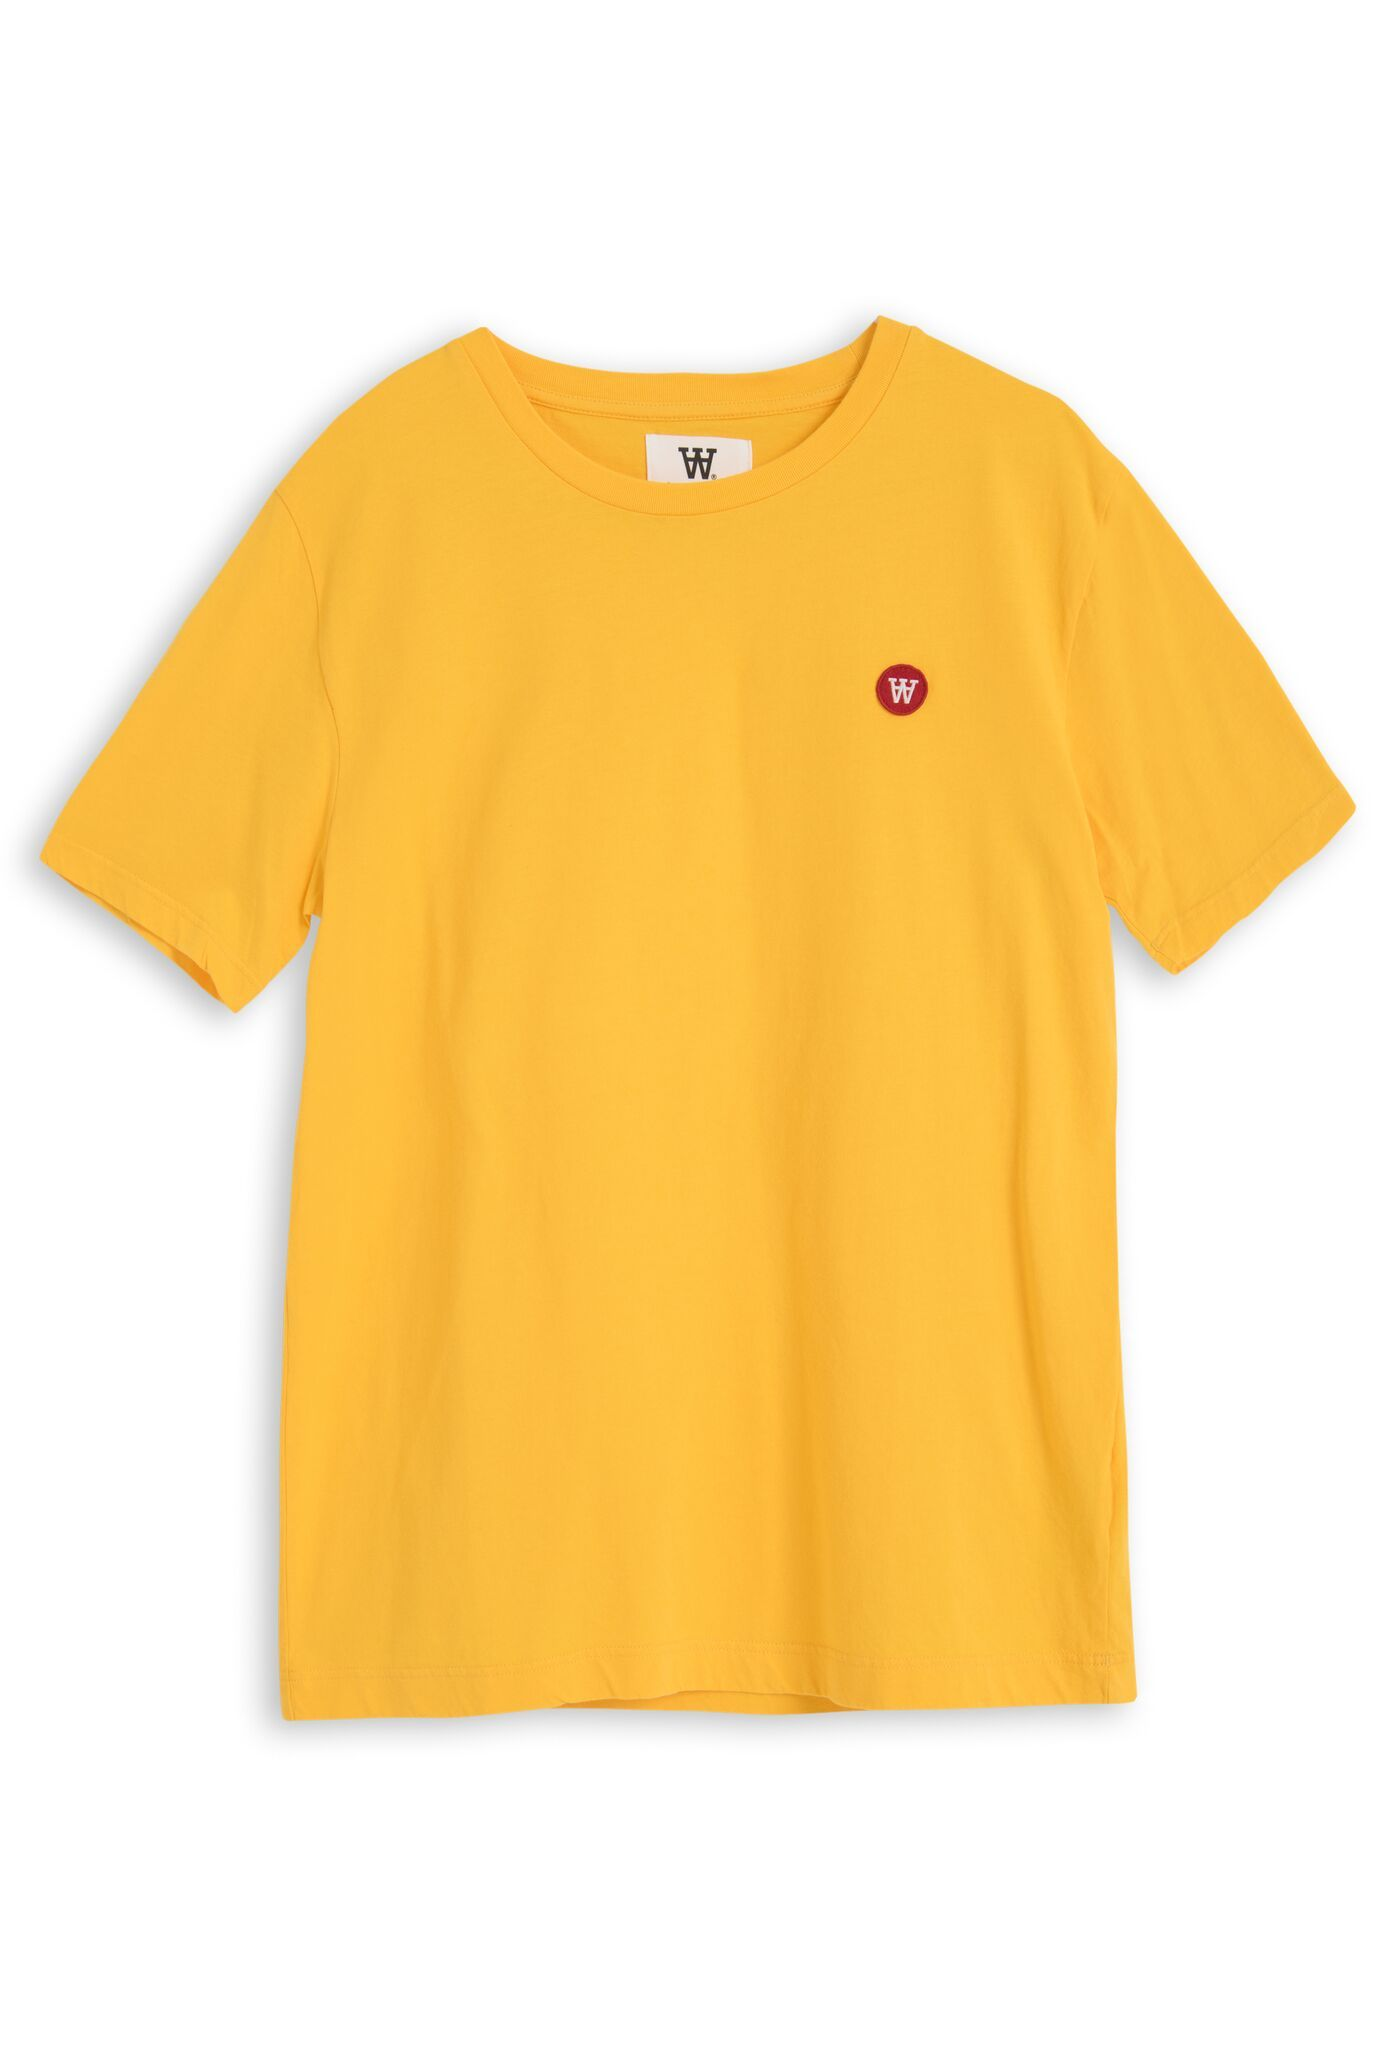 Ace T-Shirt Yellow T-Shirt Wood Wood - der ZEITGEIST